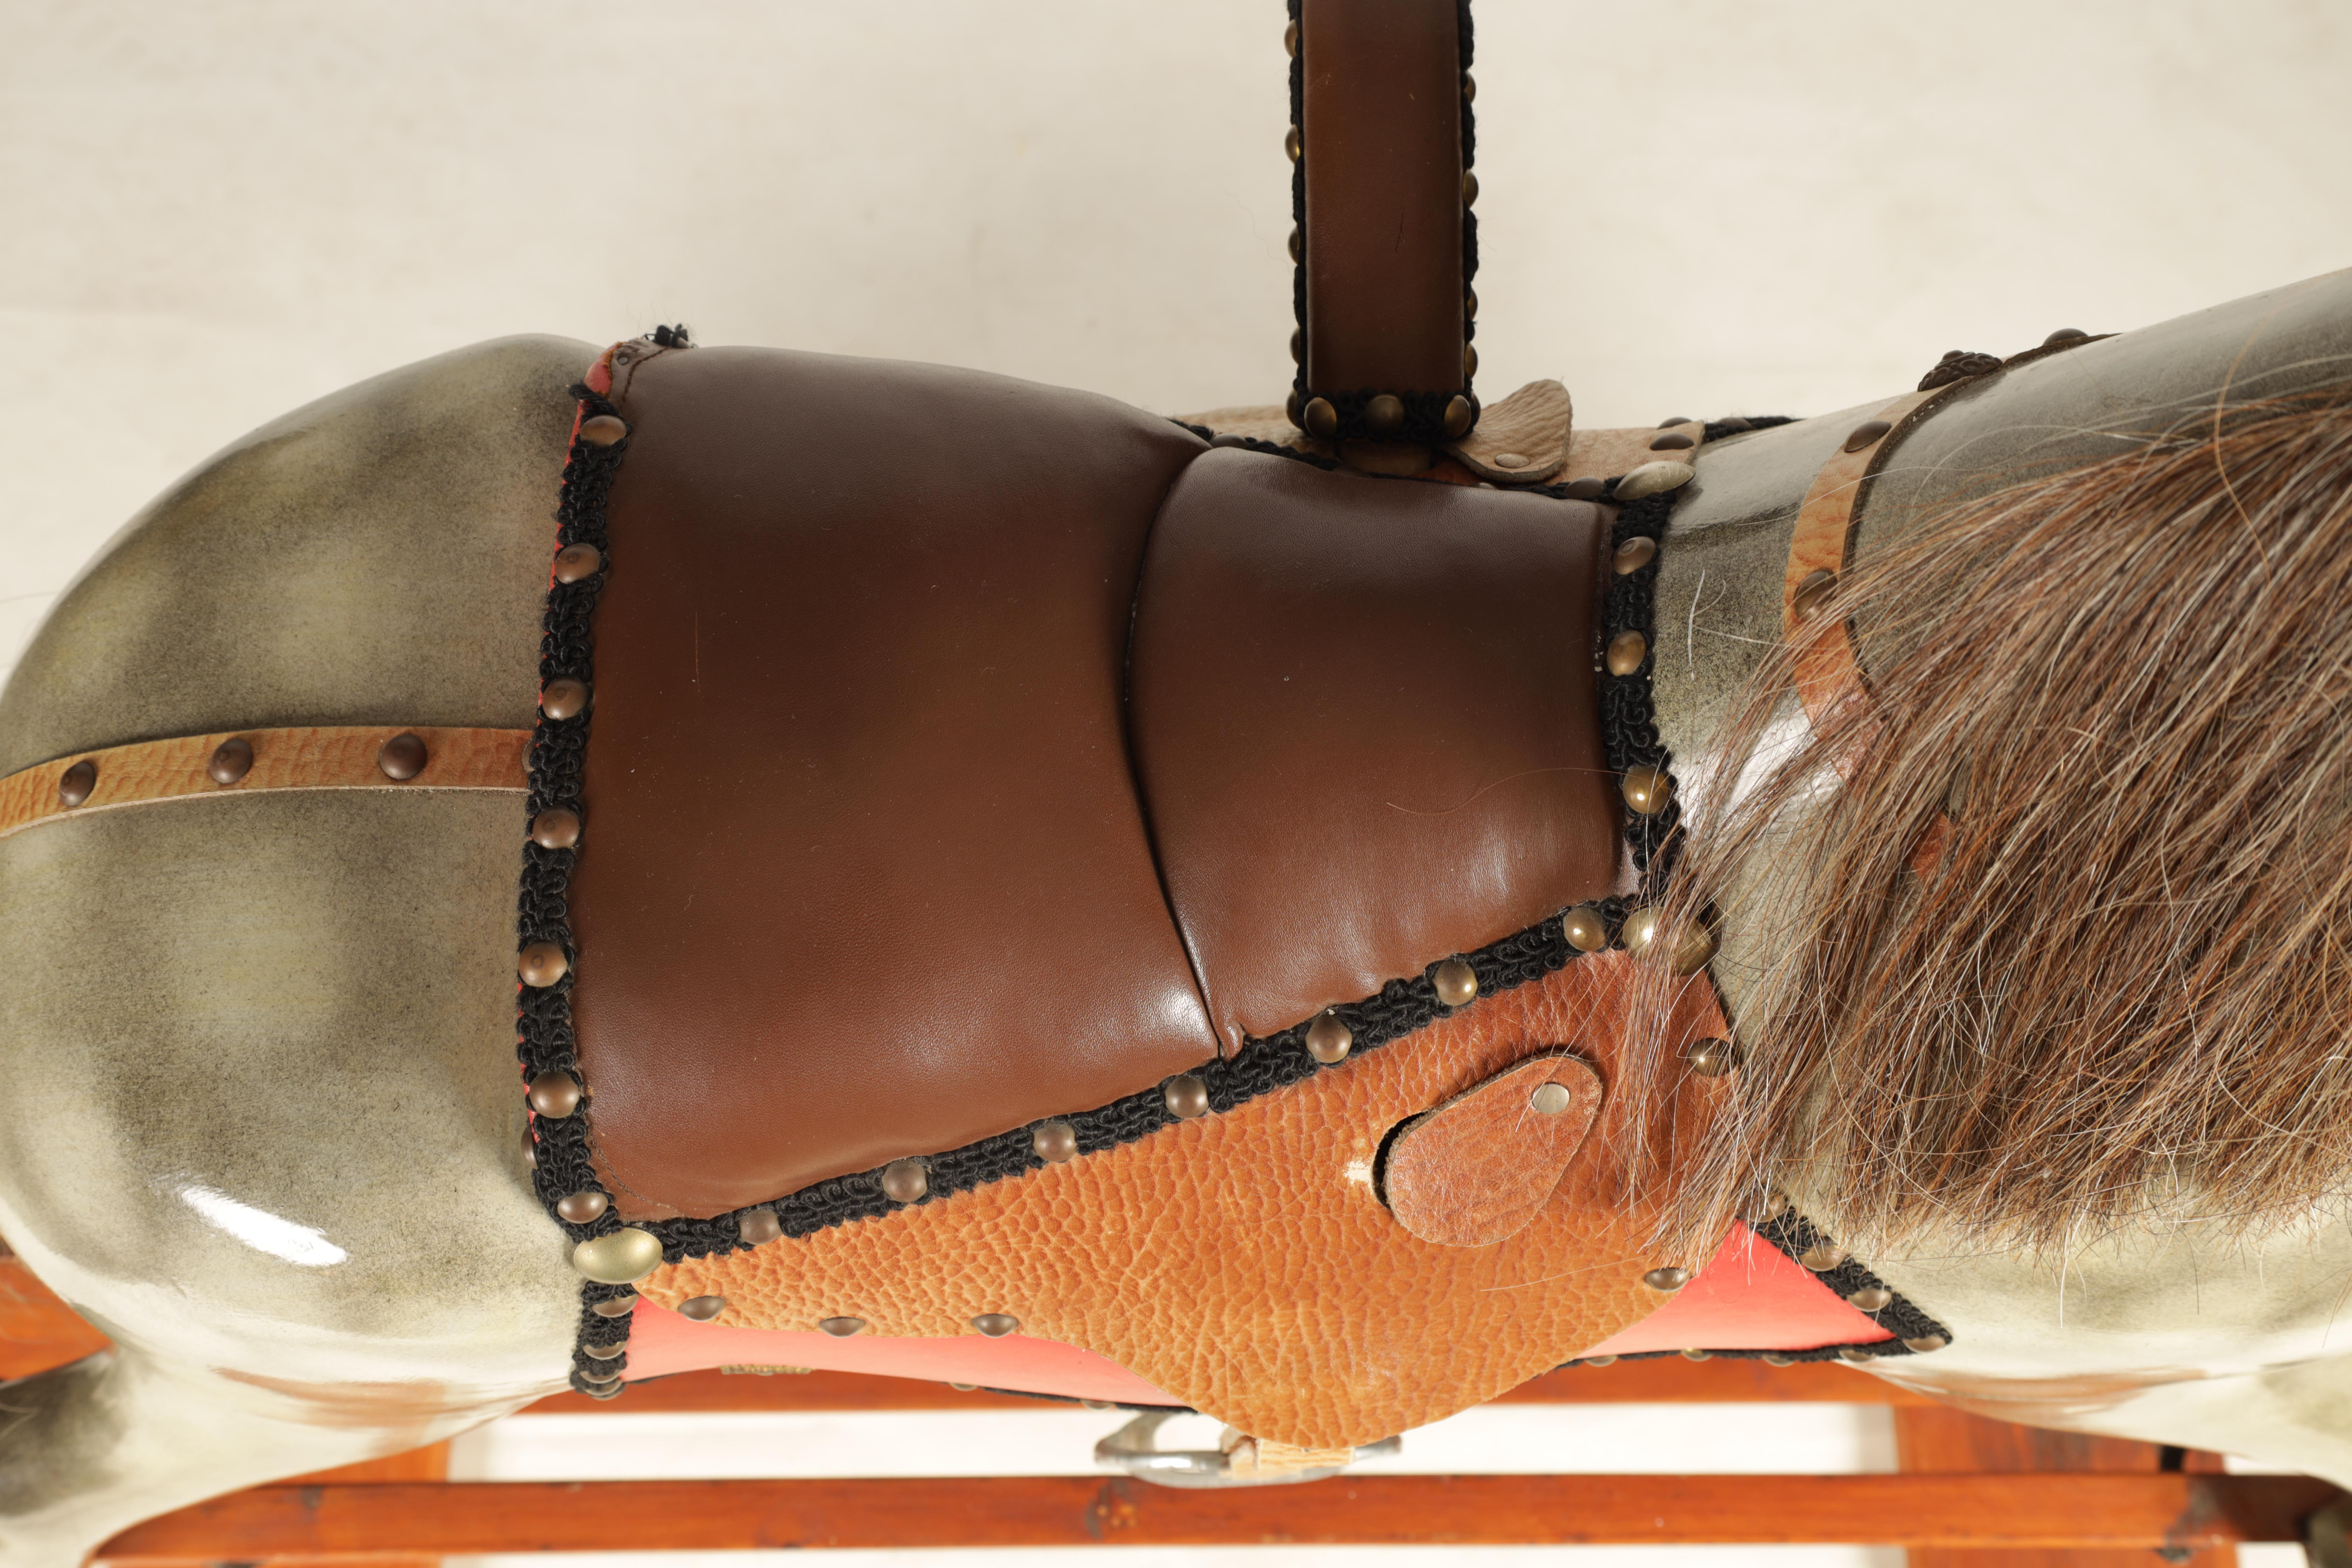 A 20TH CENTURY DAPPLE GREY PAINTED WOODEN ROCKING HORSE with leather seat and bridle 138cm wide - Image 3 of 8